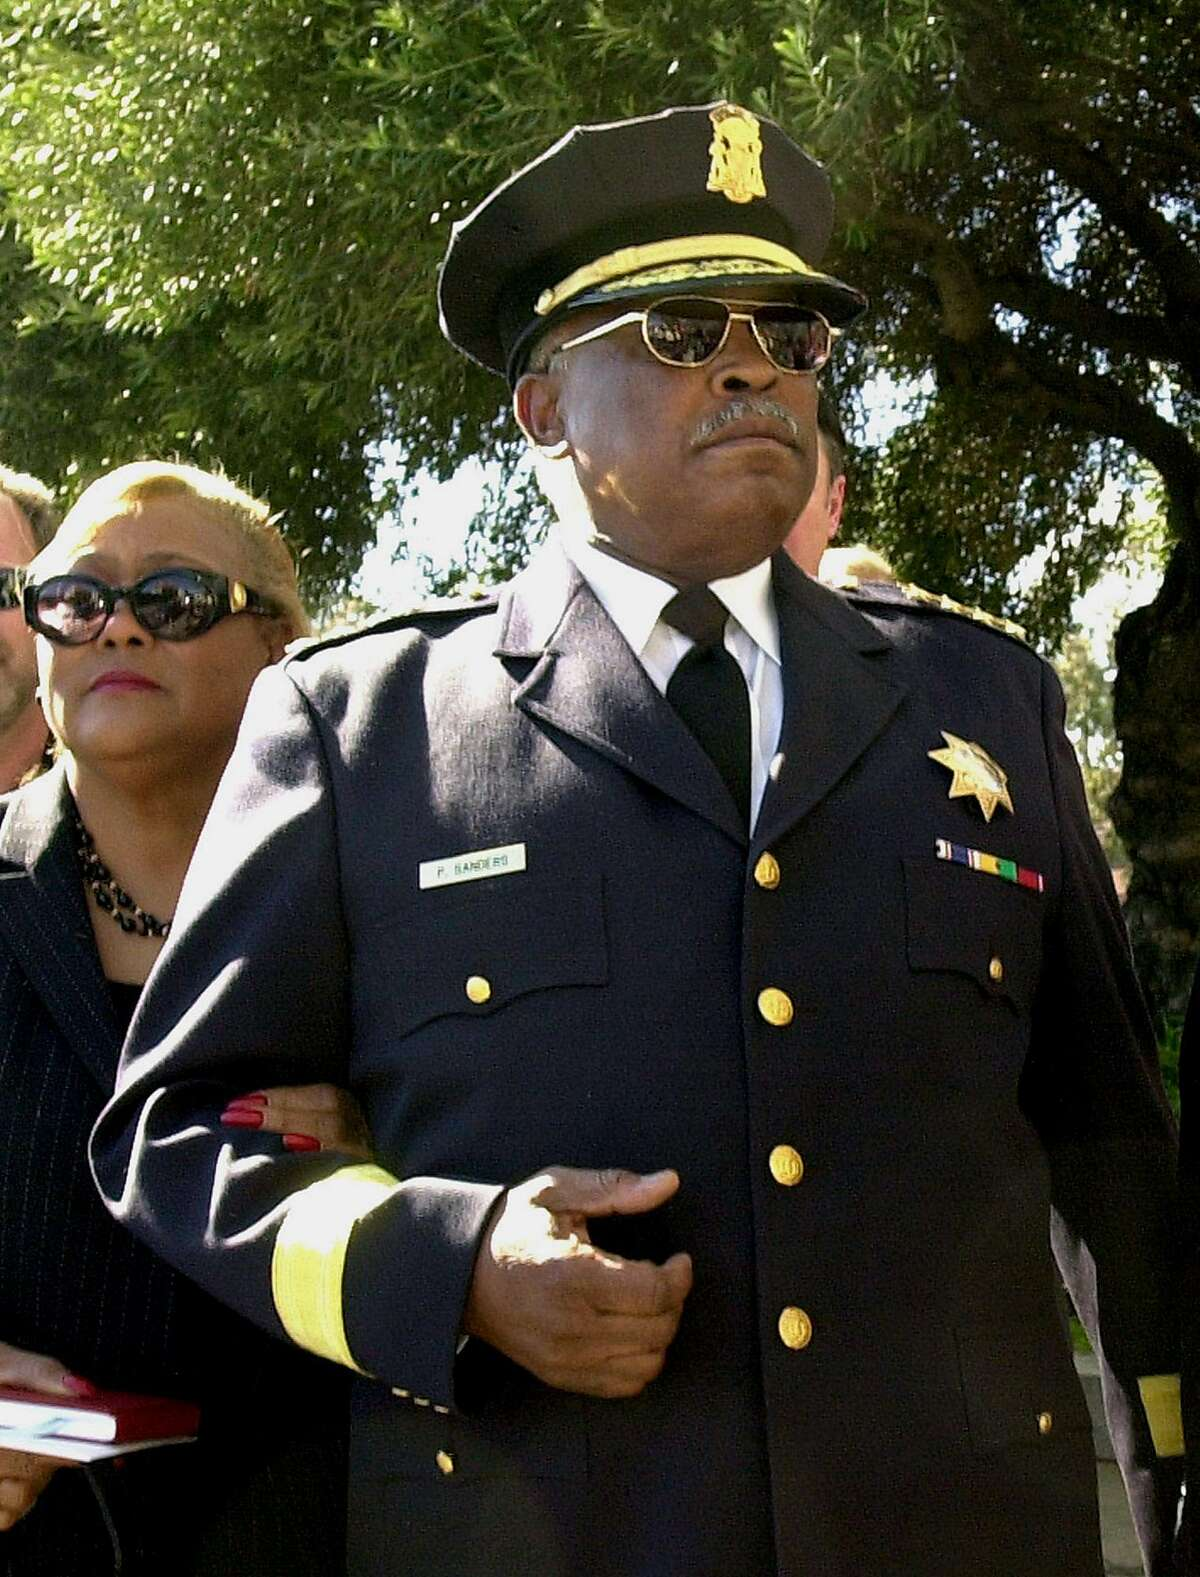 San Francisco Police Chief Earl Sanders and his wife, Espanola Sanders, appear at the San Francisco Hall of Justice Tuesday, March 4, 2003.